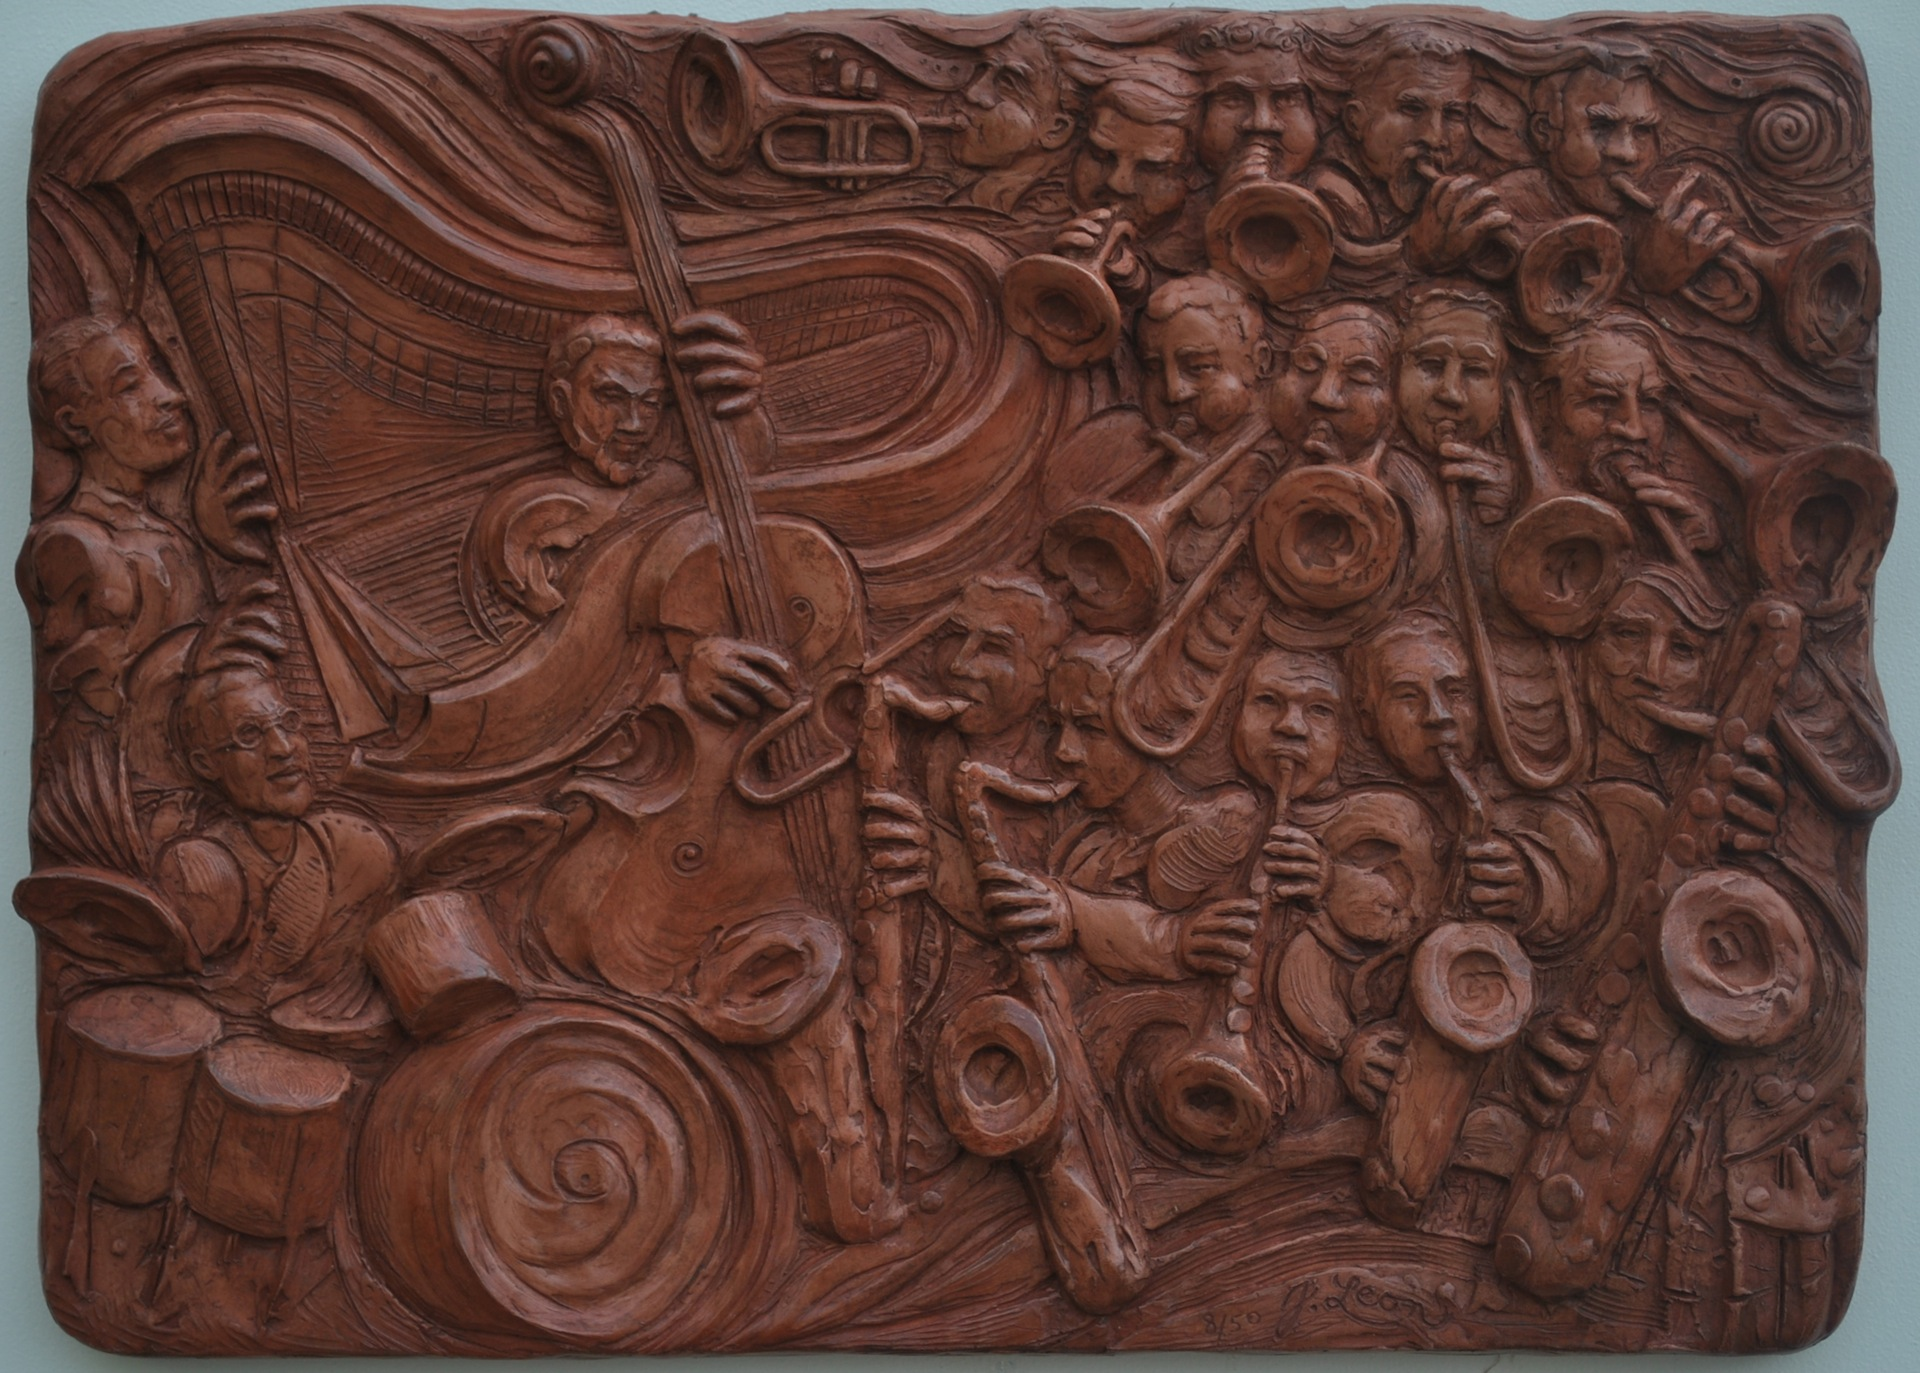 Big Band In a Small Club. Cast stone from clay original. 15 x 20 x 1.5 in. Edition of 50 (over half have been sold). $375 ready for hanging.